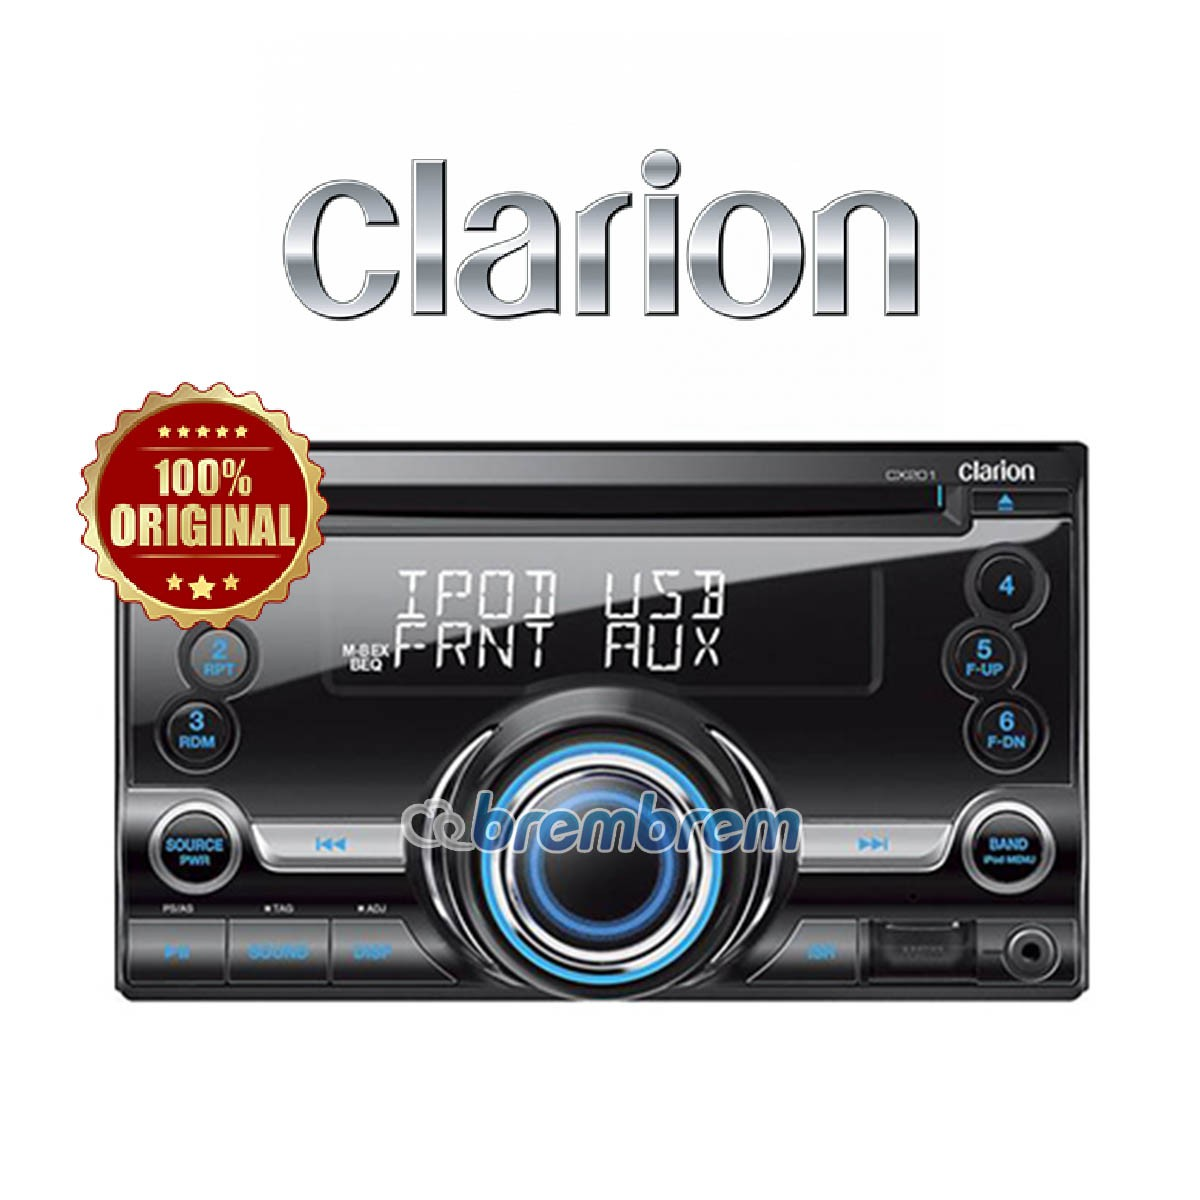 CLARION CX 201 A - HEAD UNIT DOUBLE DIN